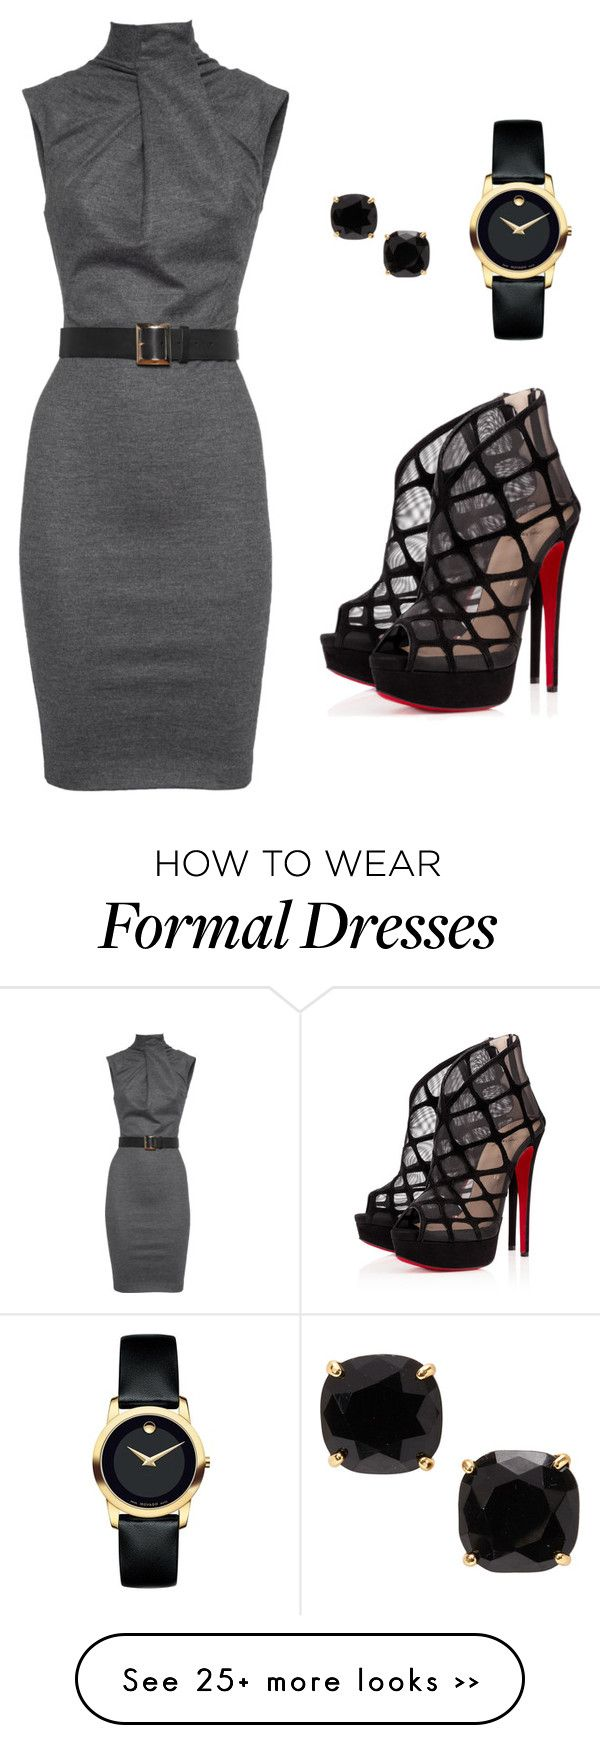 """Semi formal outfit"" by priyanka-cholleti on Polyvore featuring Dsquared2, Christian Louboutin, Movado and Kate Spade"